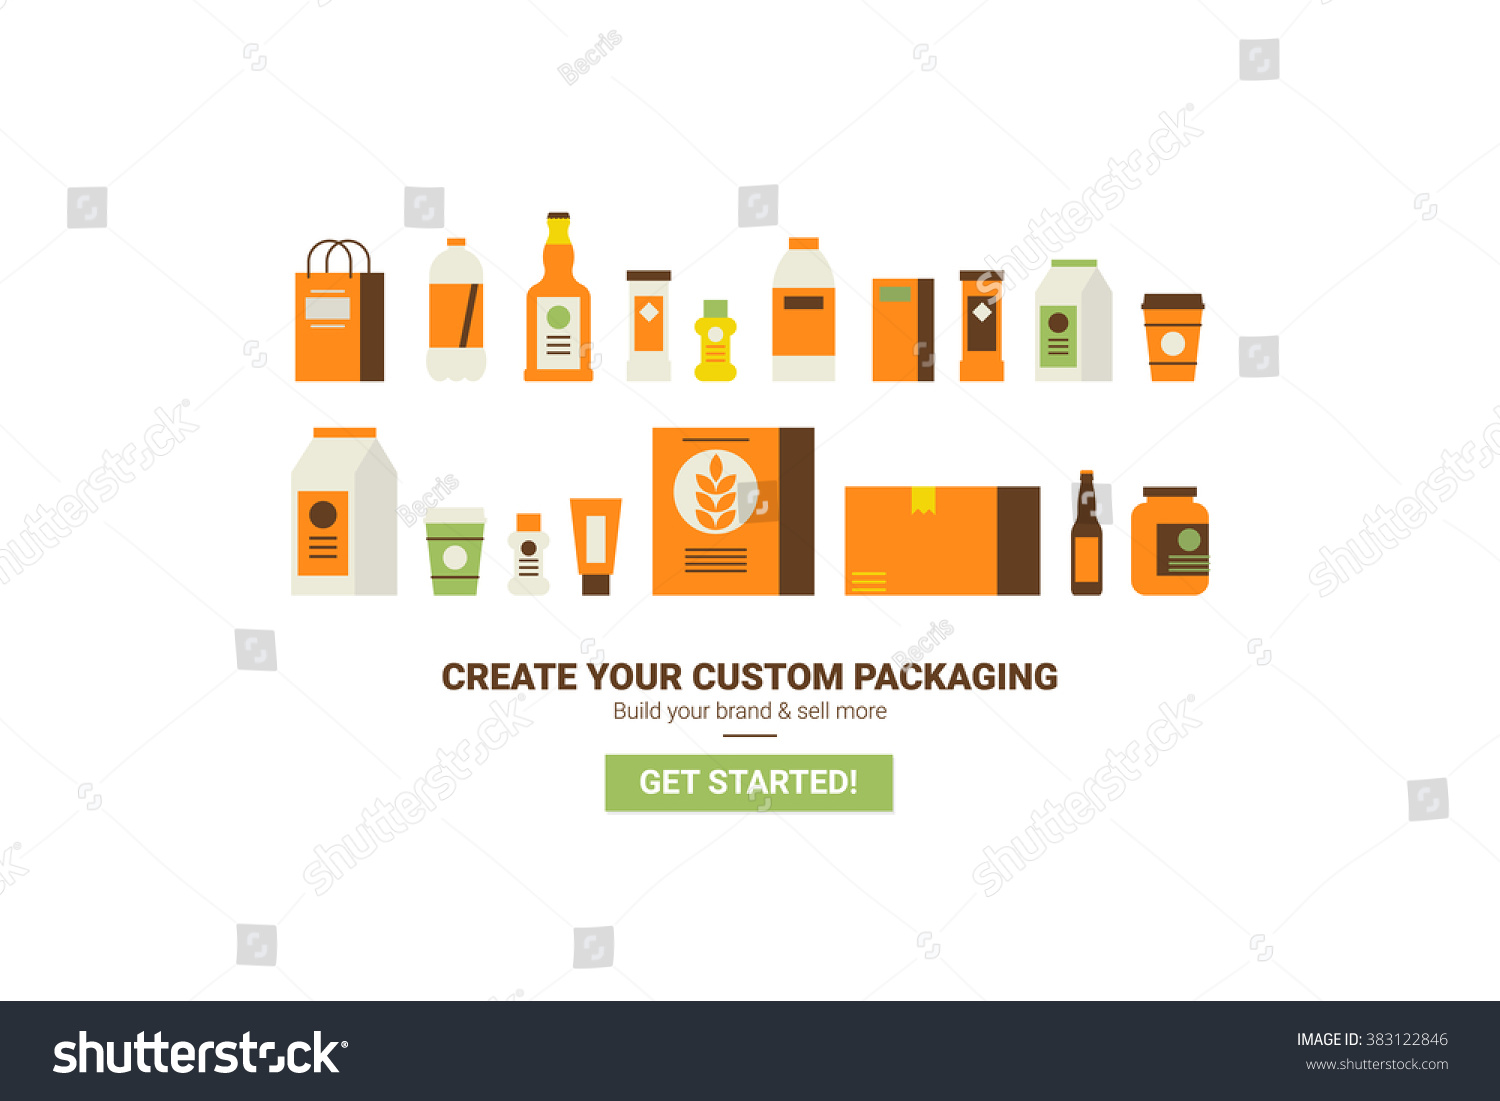 Custom packaging concept flat design website stock vector custom packaging concept flat design for website template or magazine illustration print pronofoot35fo Choice Image